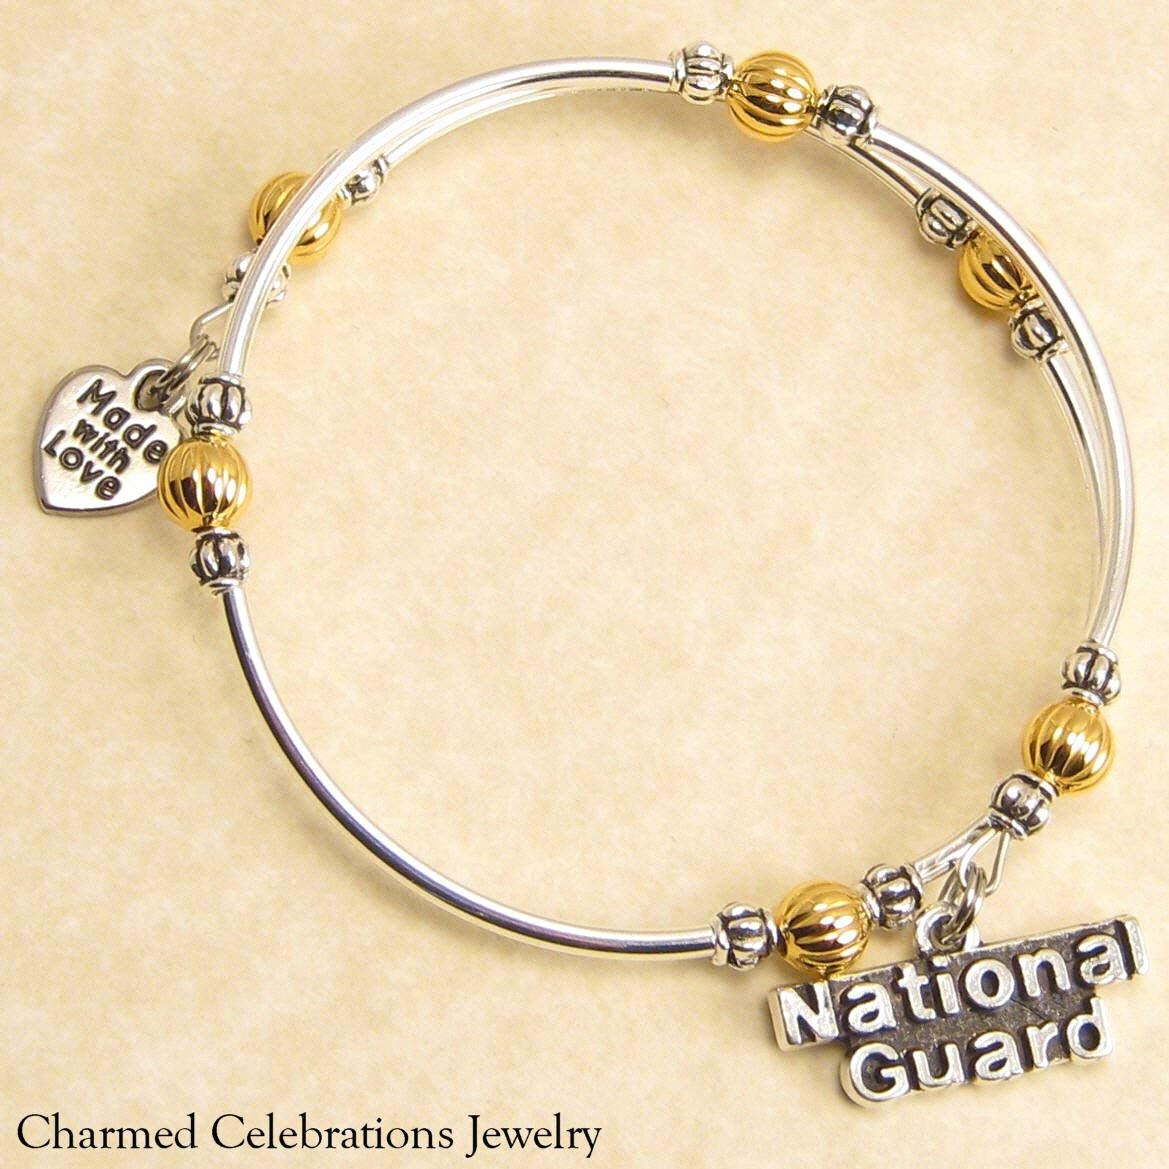 3c9509778 Get Quotations · National Guard Wrap Bracelet Handmade Themed Charm Bracelet  Jewelry Gift. Gold, Silver or Black